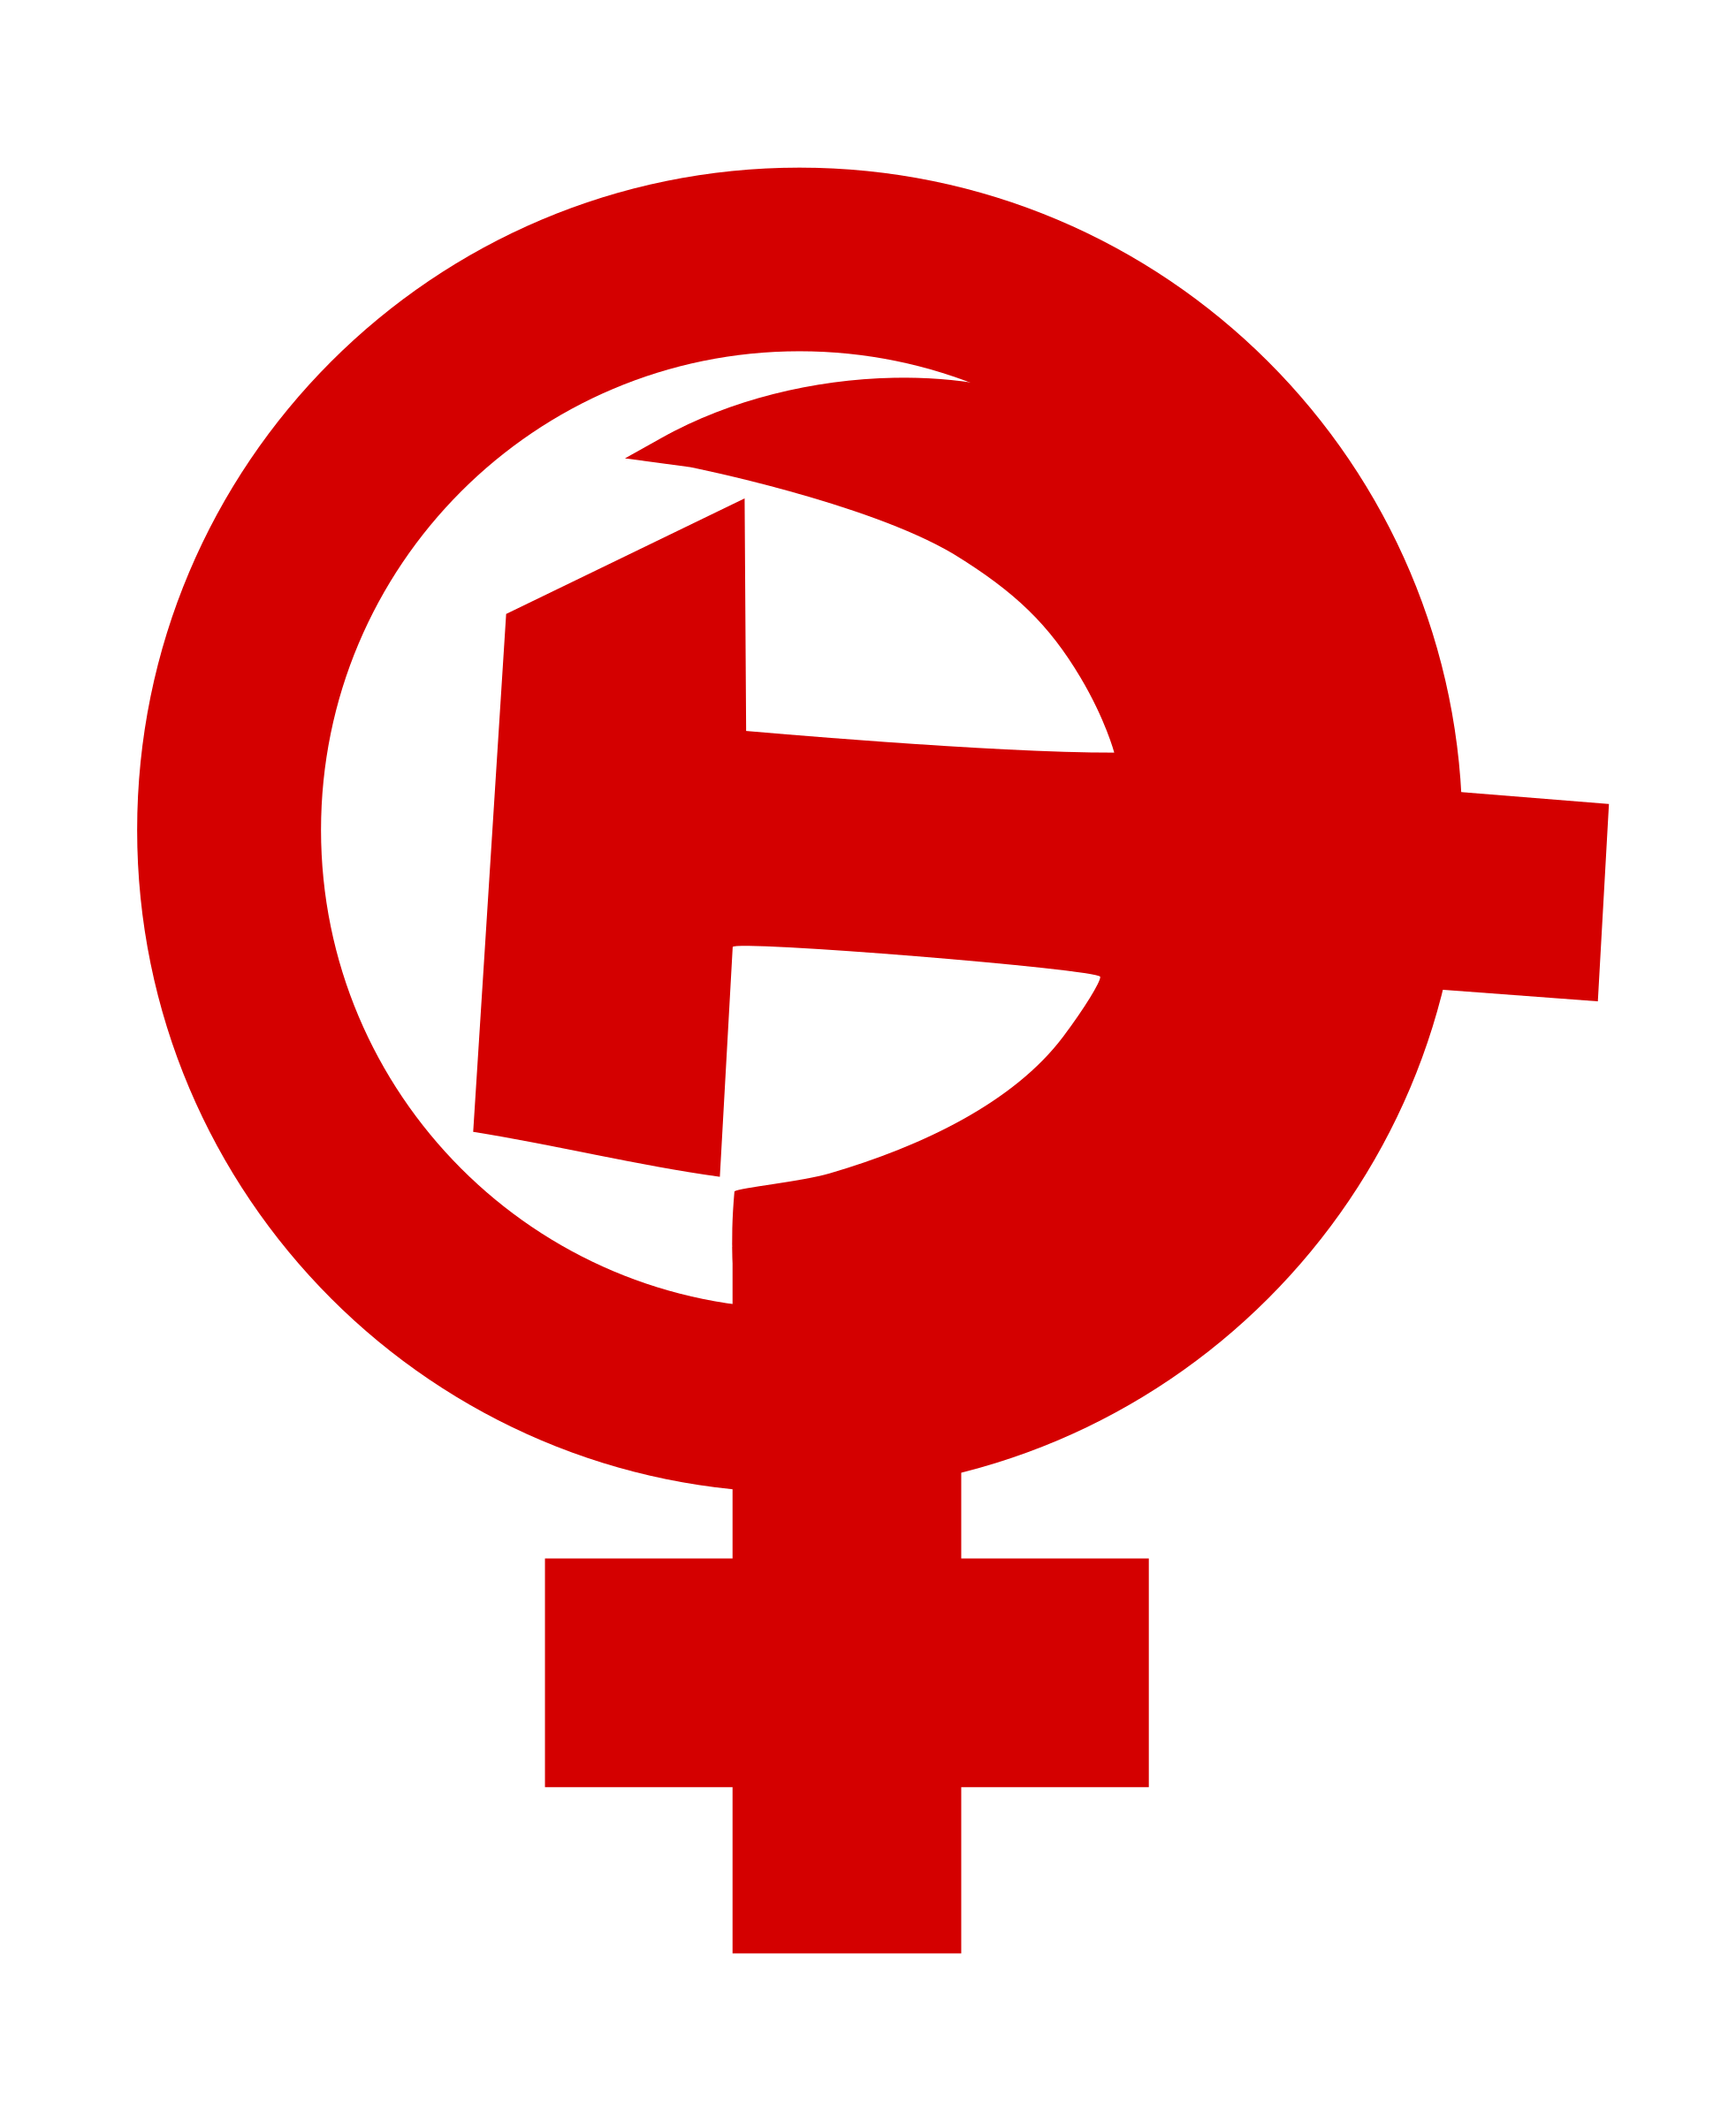 Feminism female symbol big. Clipart hammer sickle